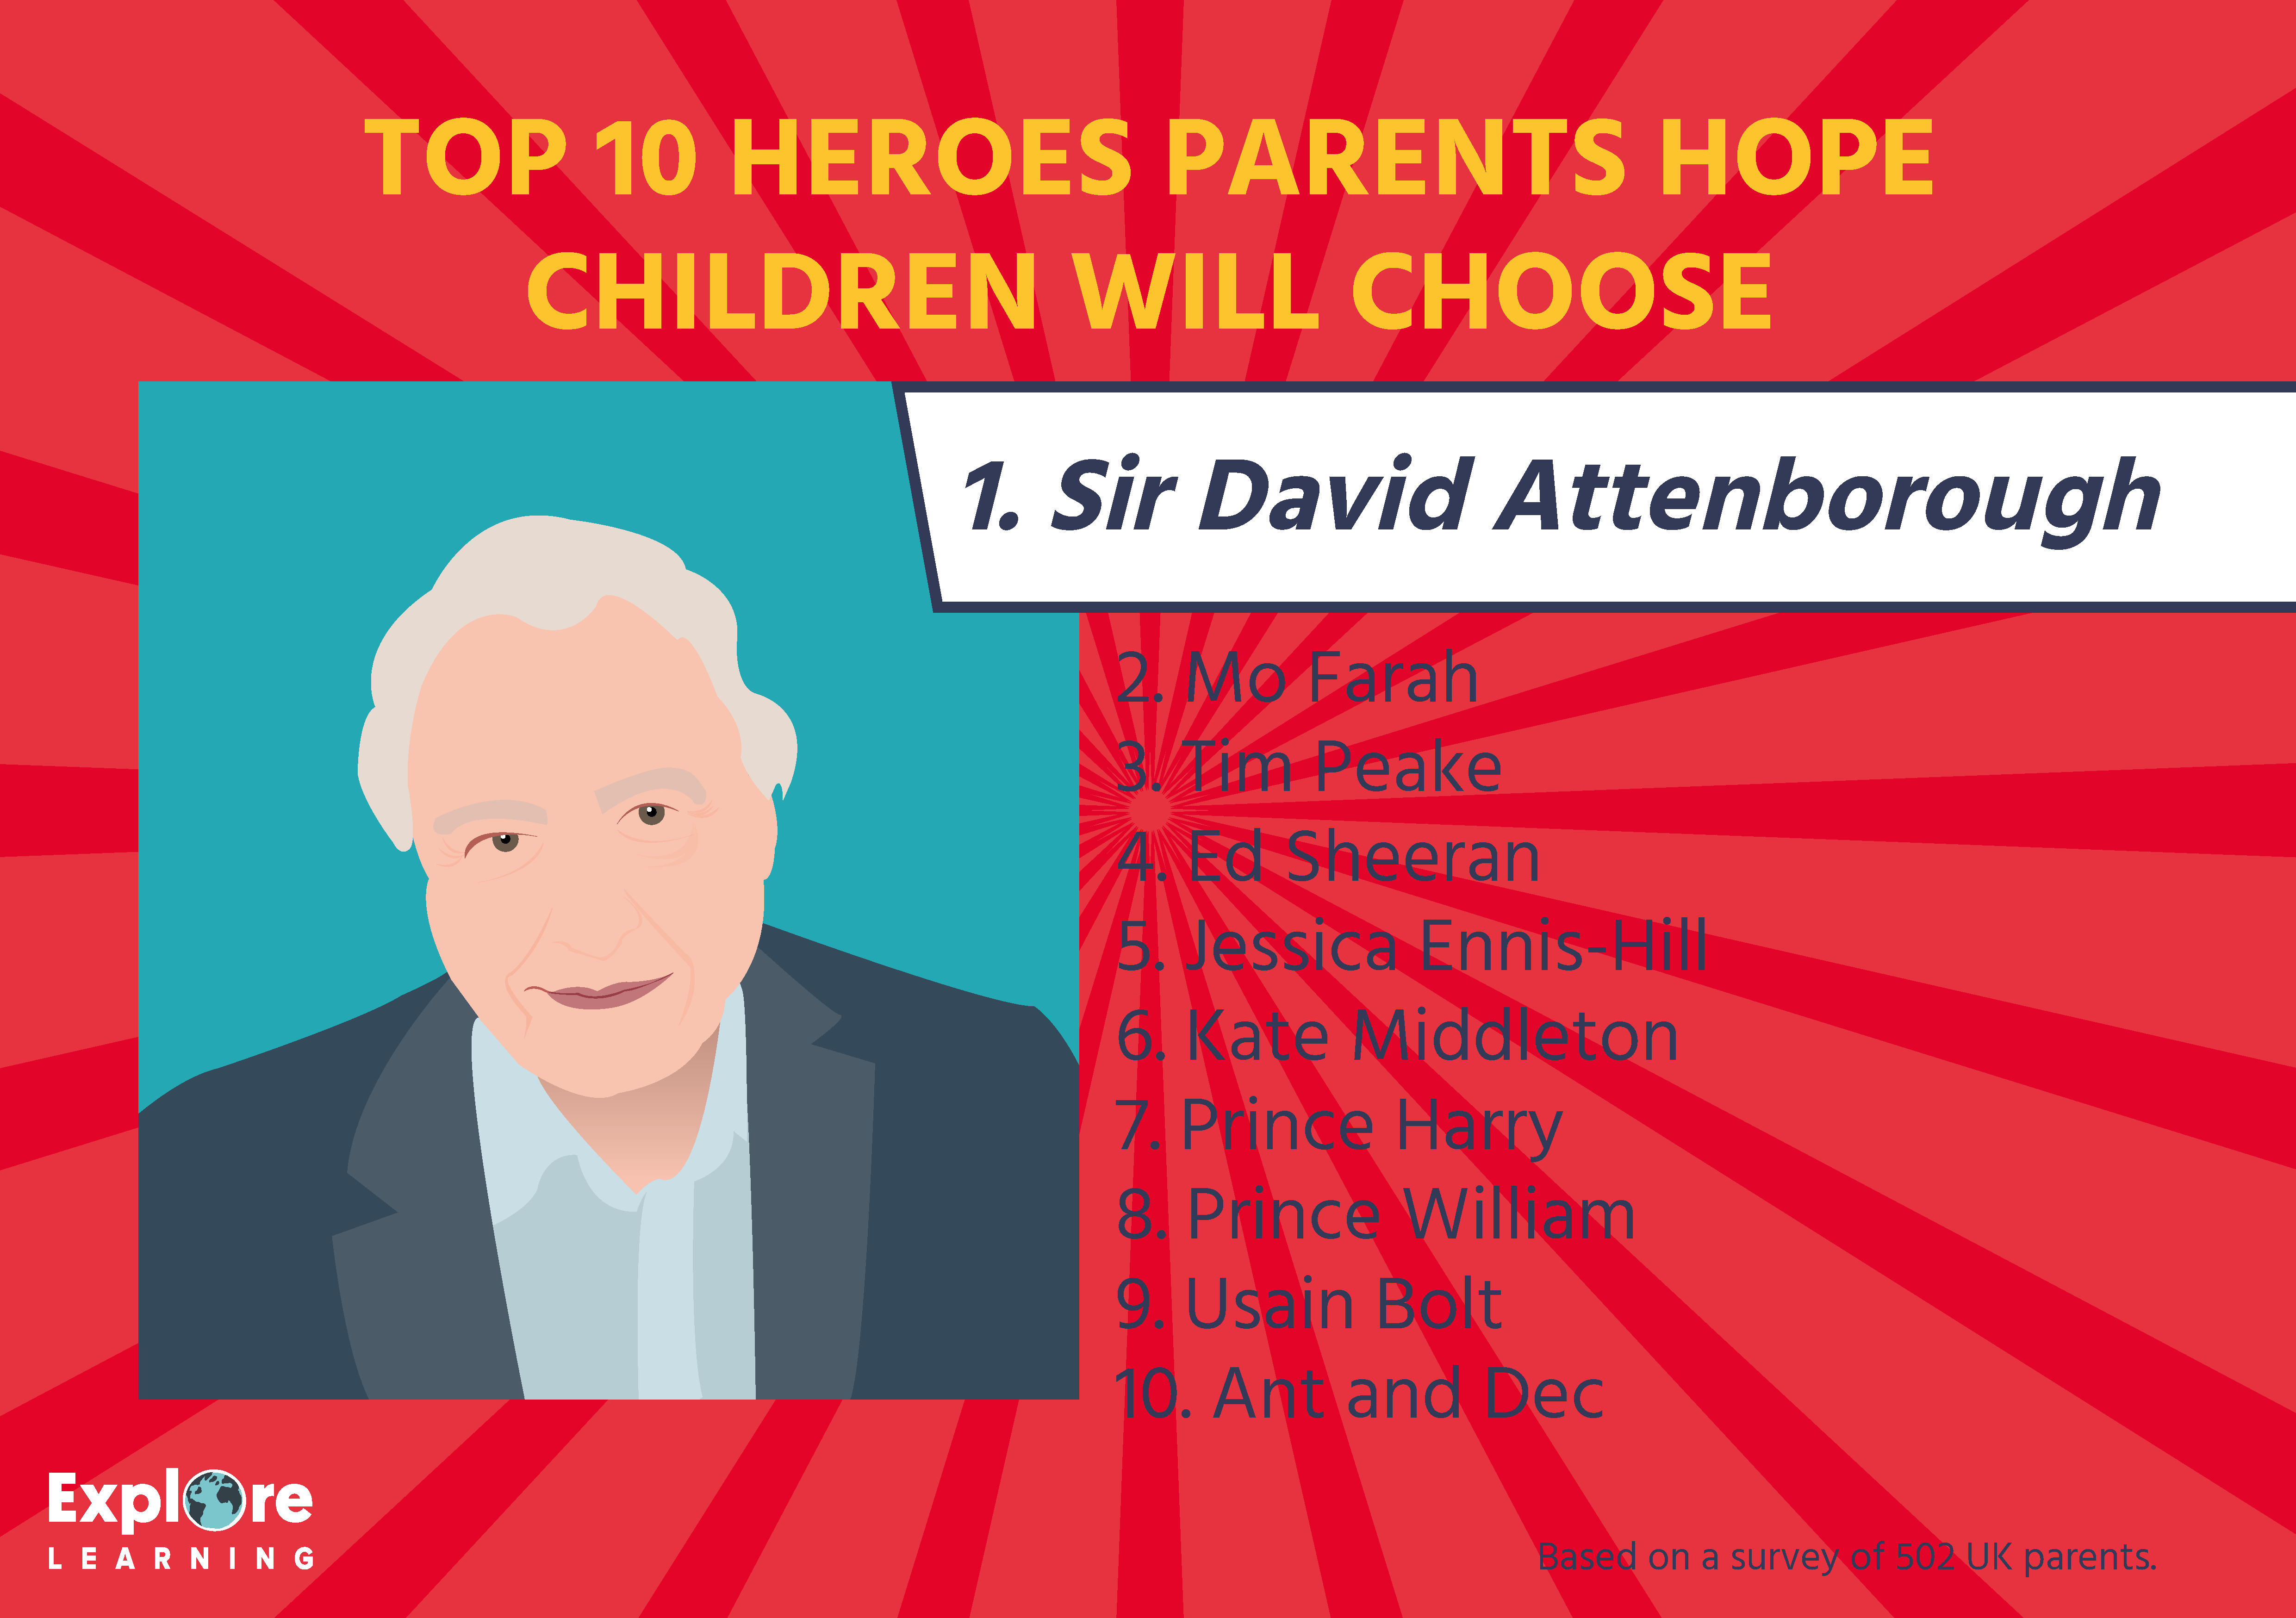 Who would you pick to be your child's hero? - Explore Learning